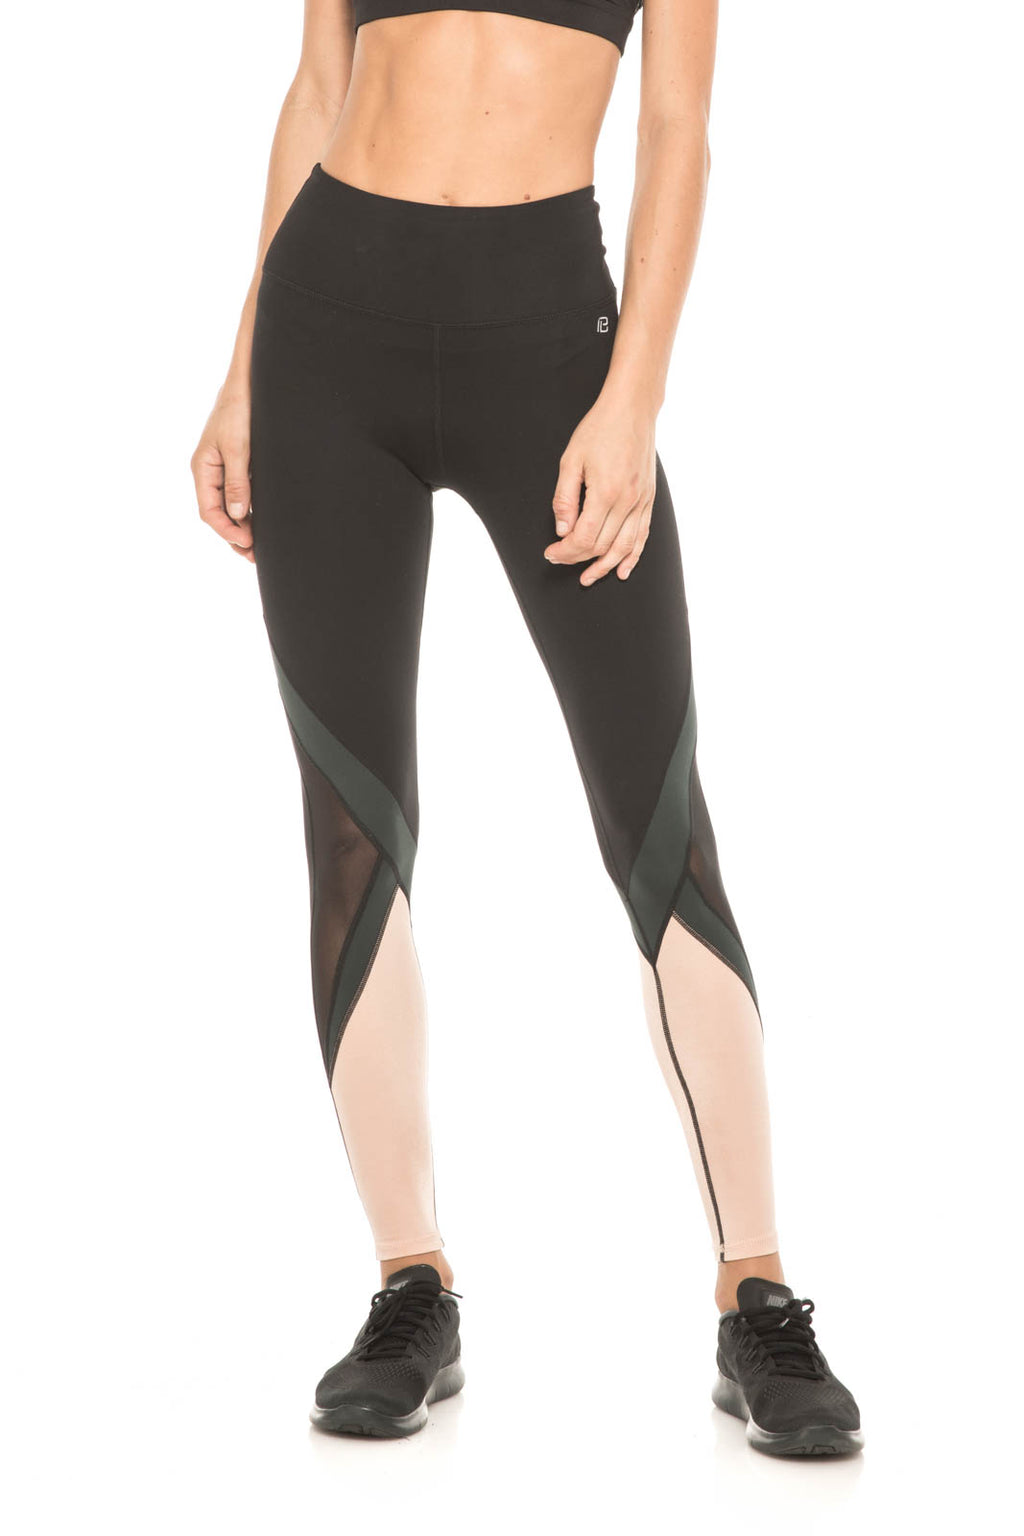 Body Language Sportswear:Women - Apparel - Active Wear - Bottom:Paradise Legging:XS